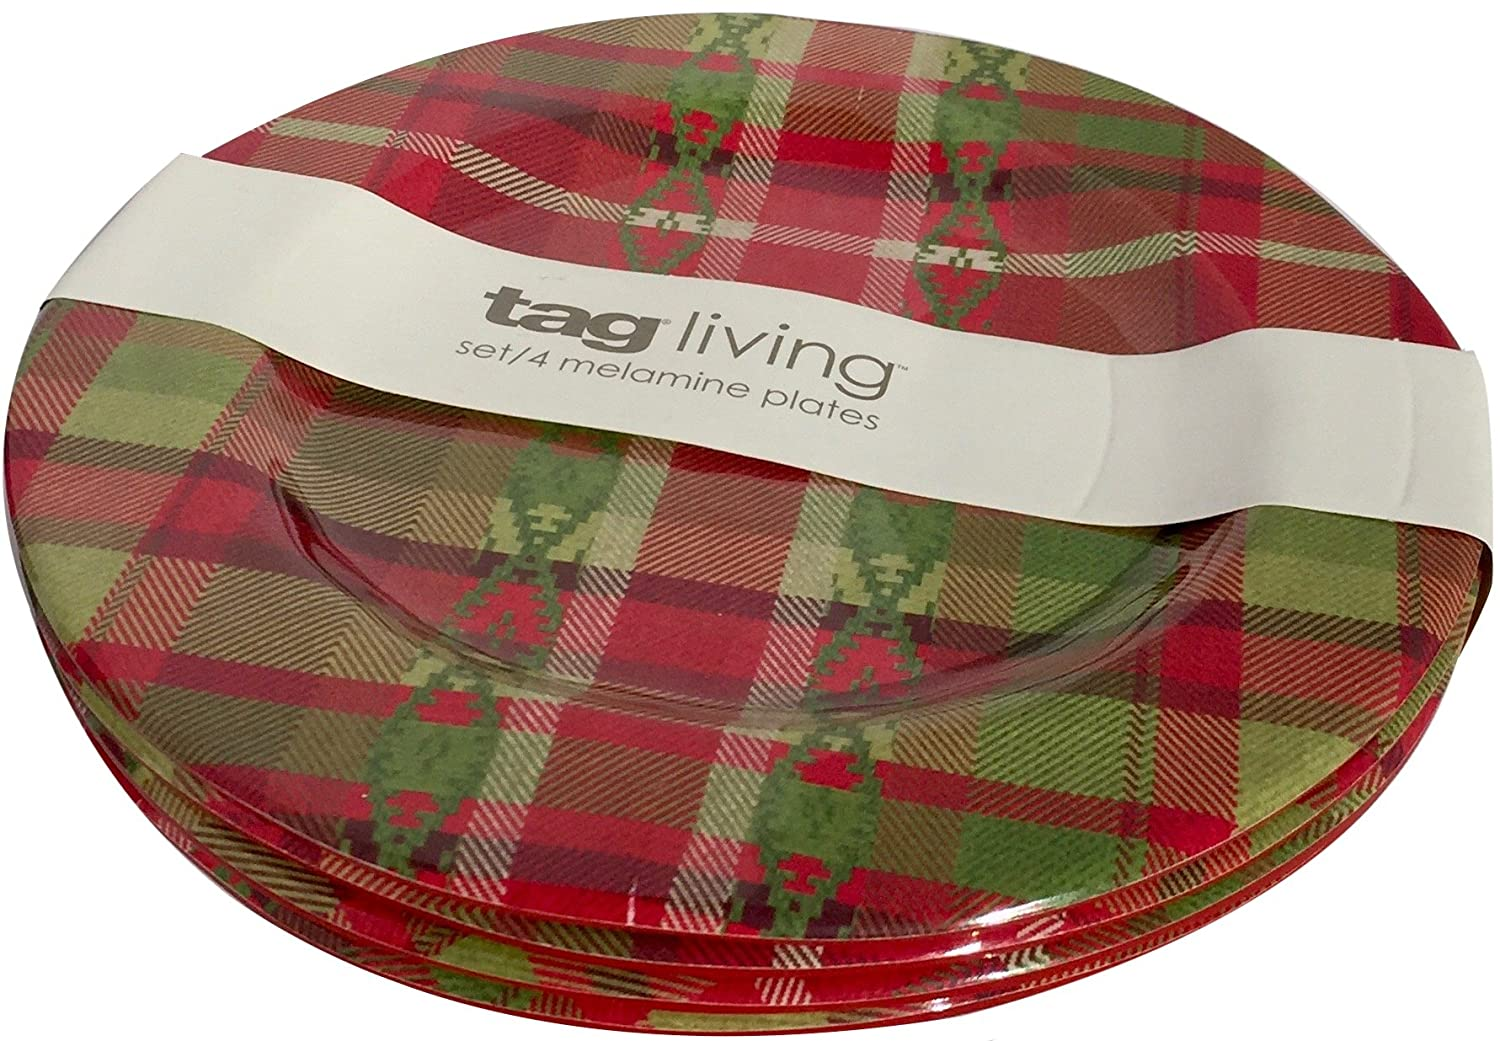 tag Living Set of 4 Melamine Appetizer Dessert Plates 6.5 Inch Holiday Plaid South Western Style Pattern